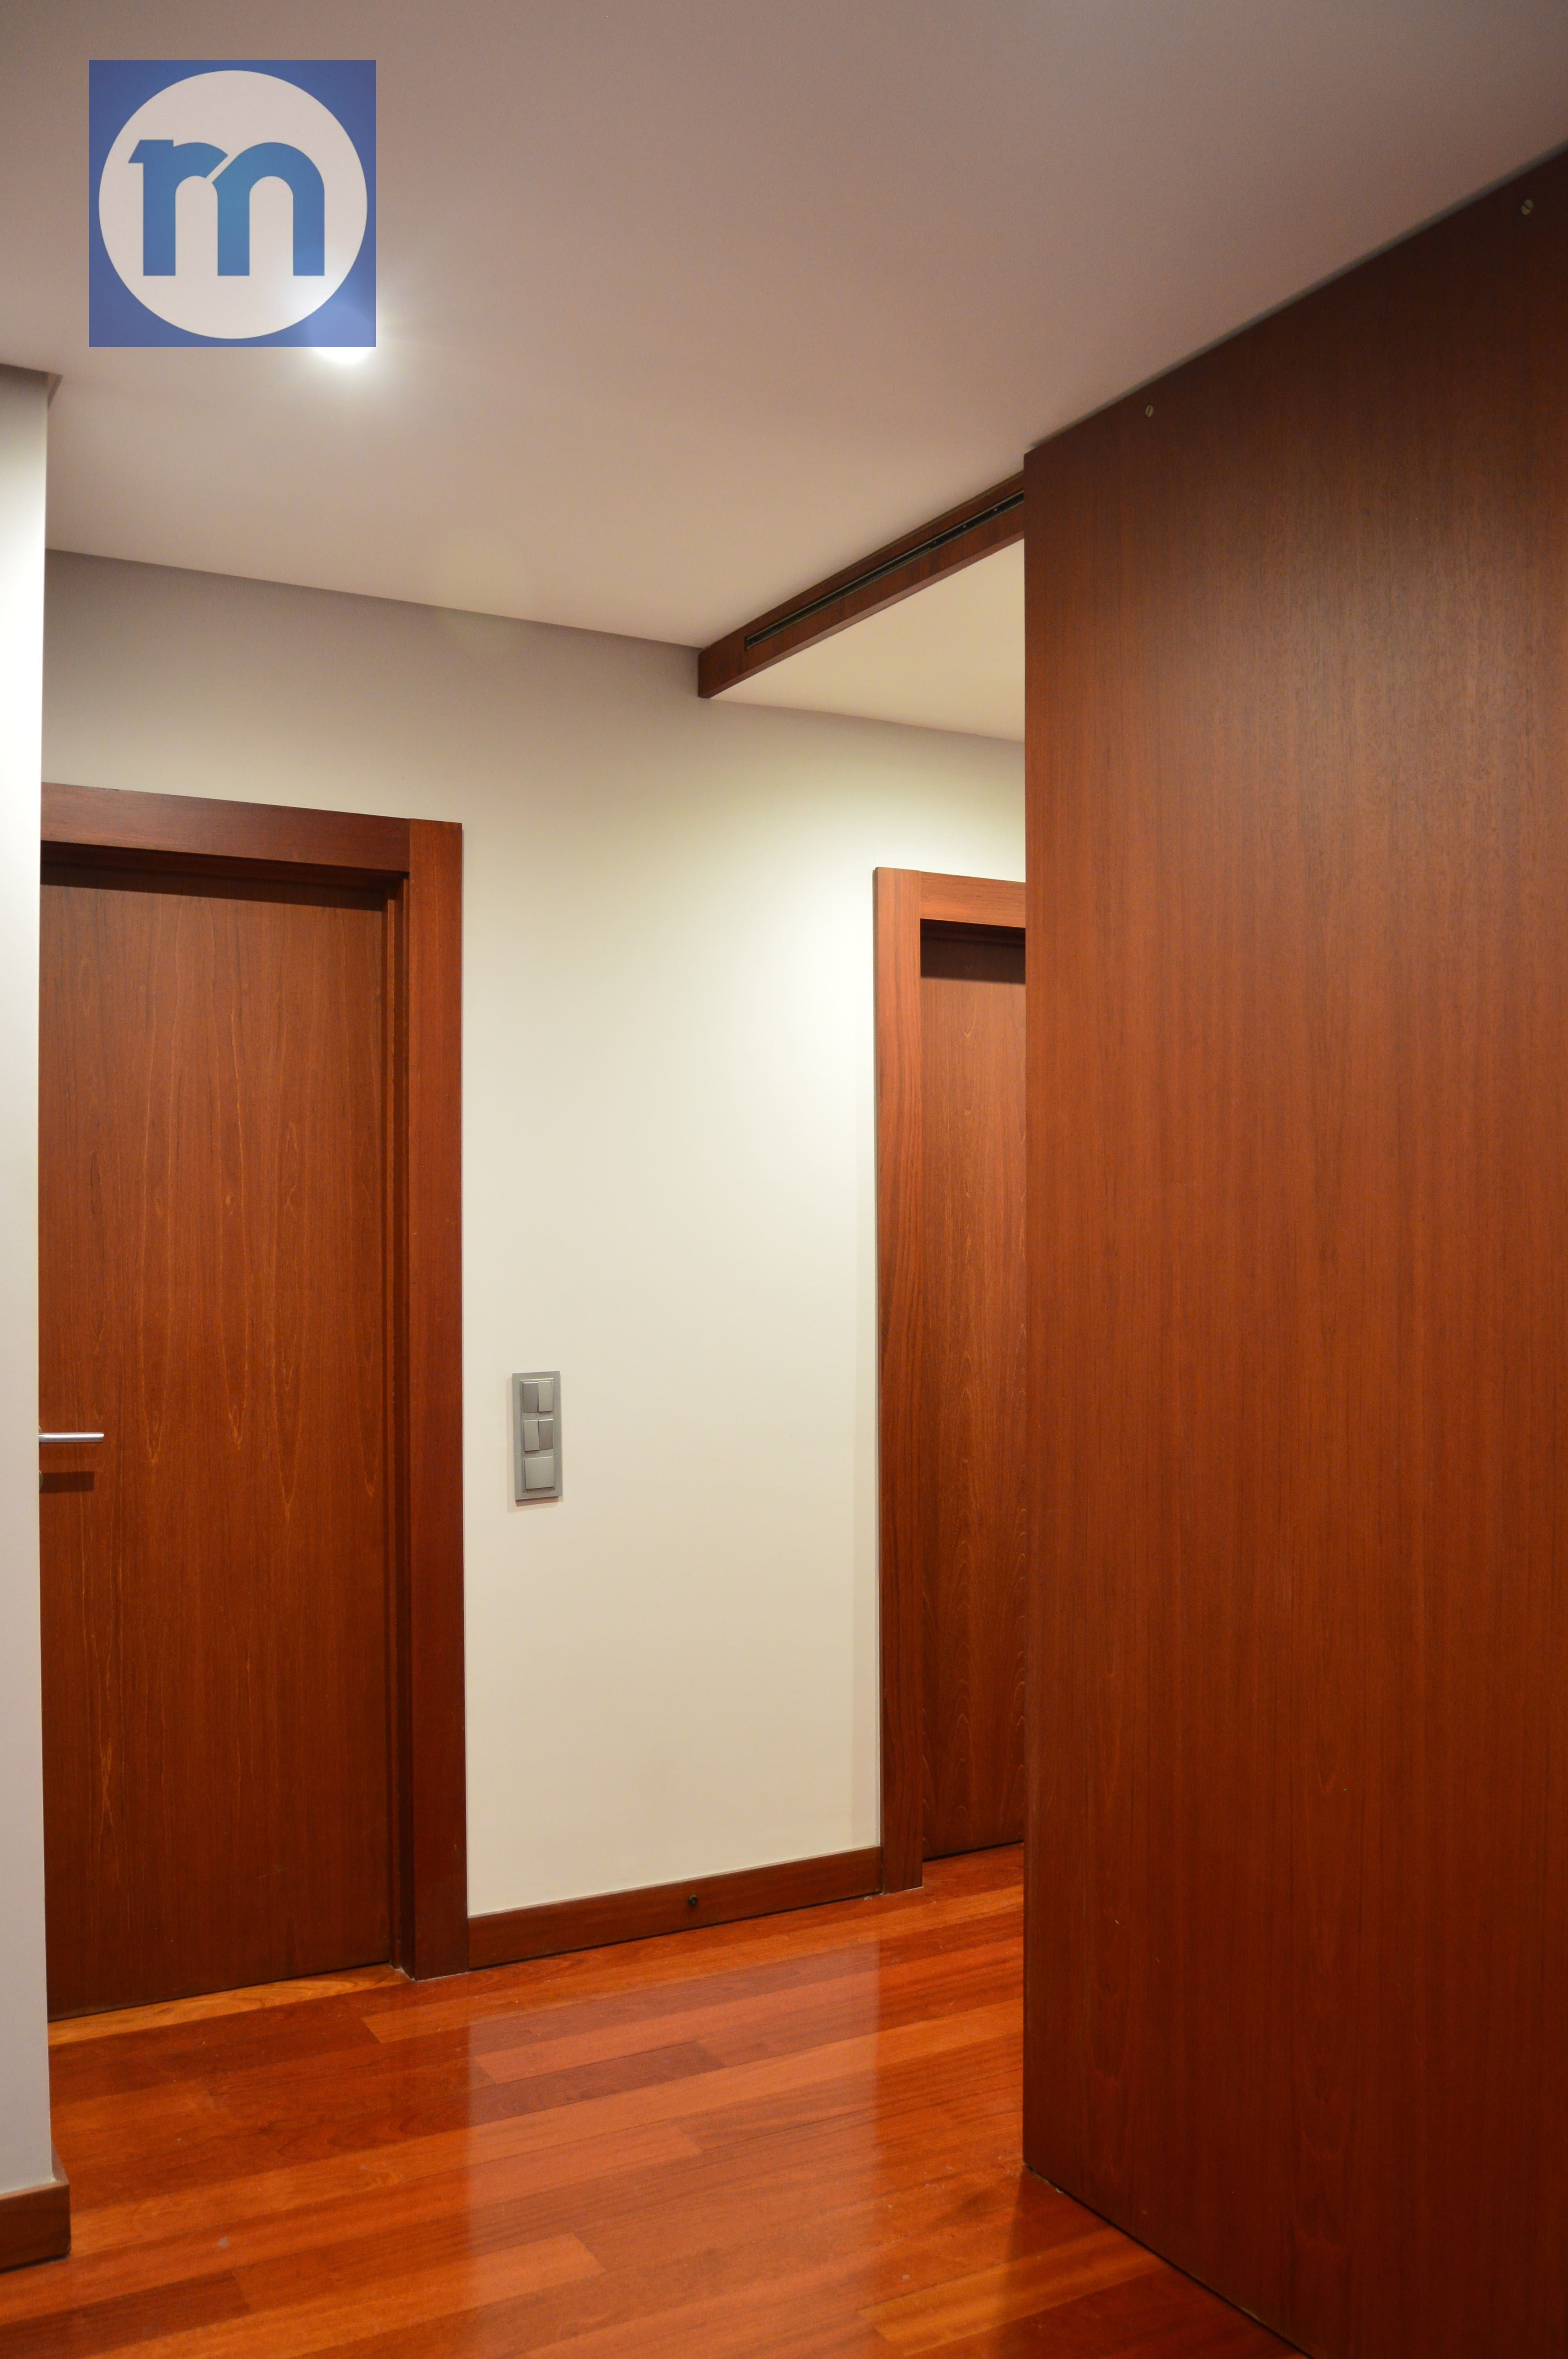 Hall camere